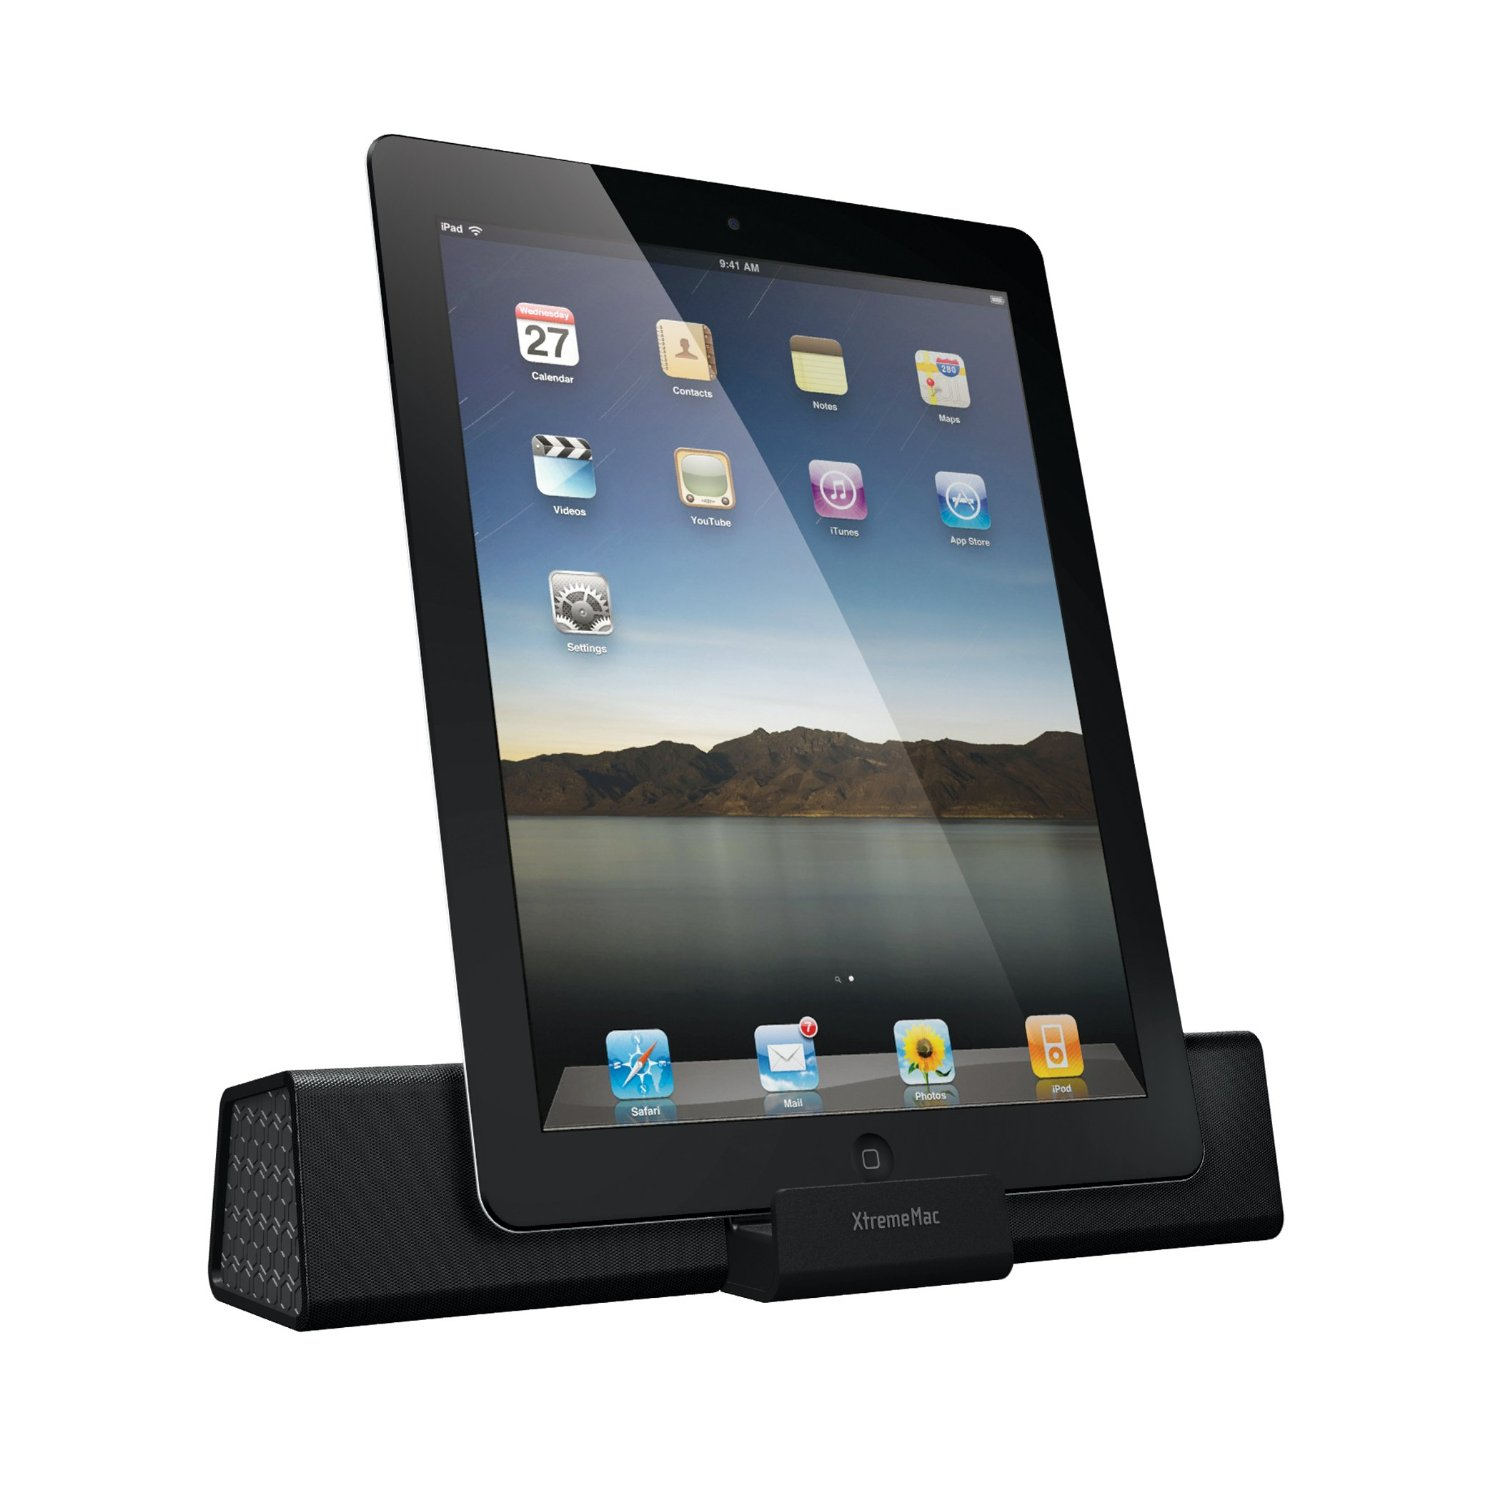 xtrememac soma travel portable speaker dock station system. Black Bedroom Furniture Sets. Home Design Ideas